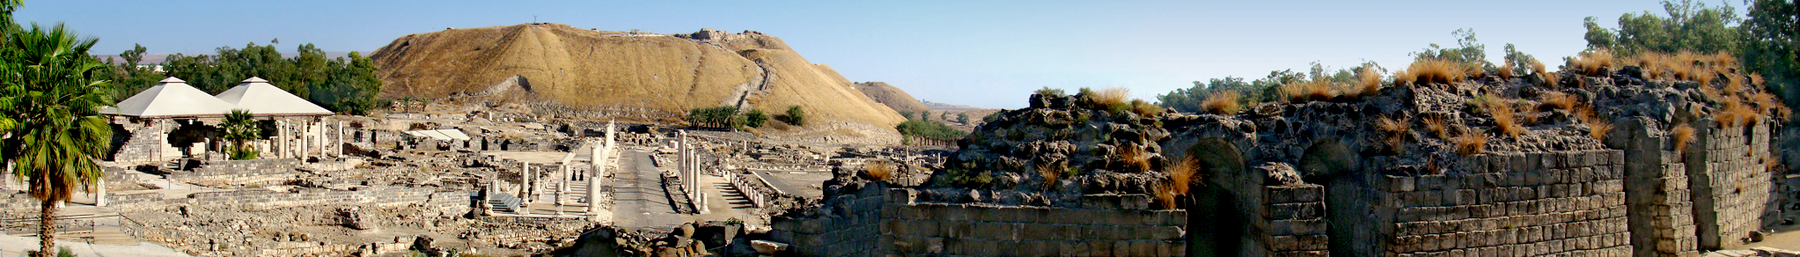 Beit Shean Wikivoyage.png